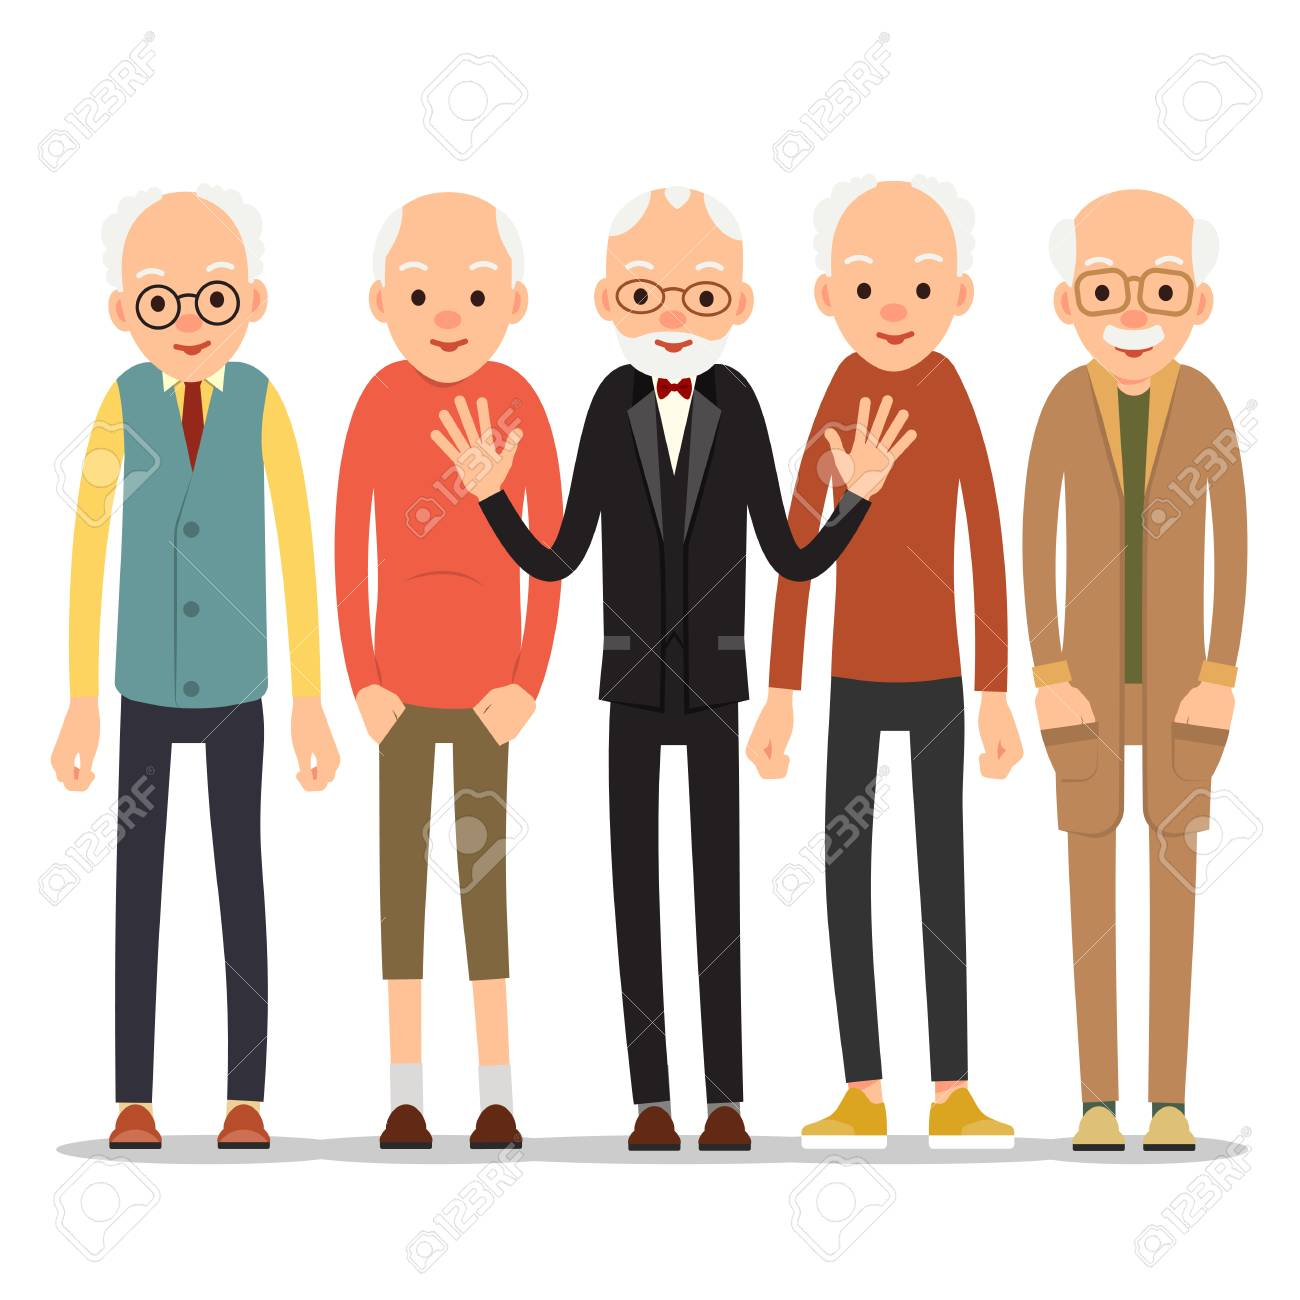 Old man older man character in various poses man in suit shirt old man older man character in various poses man in suit shirt and publicscrutiny Images